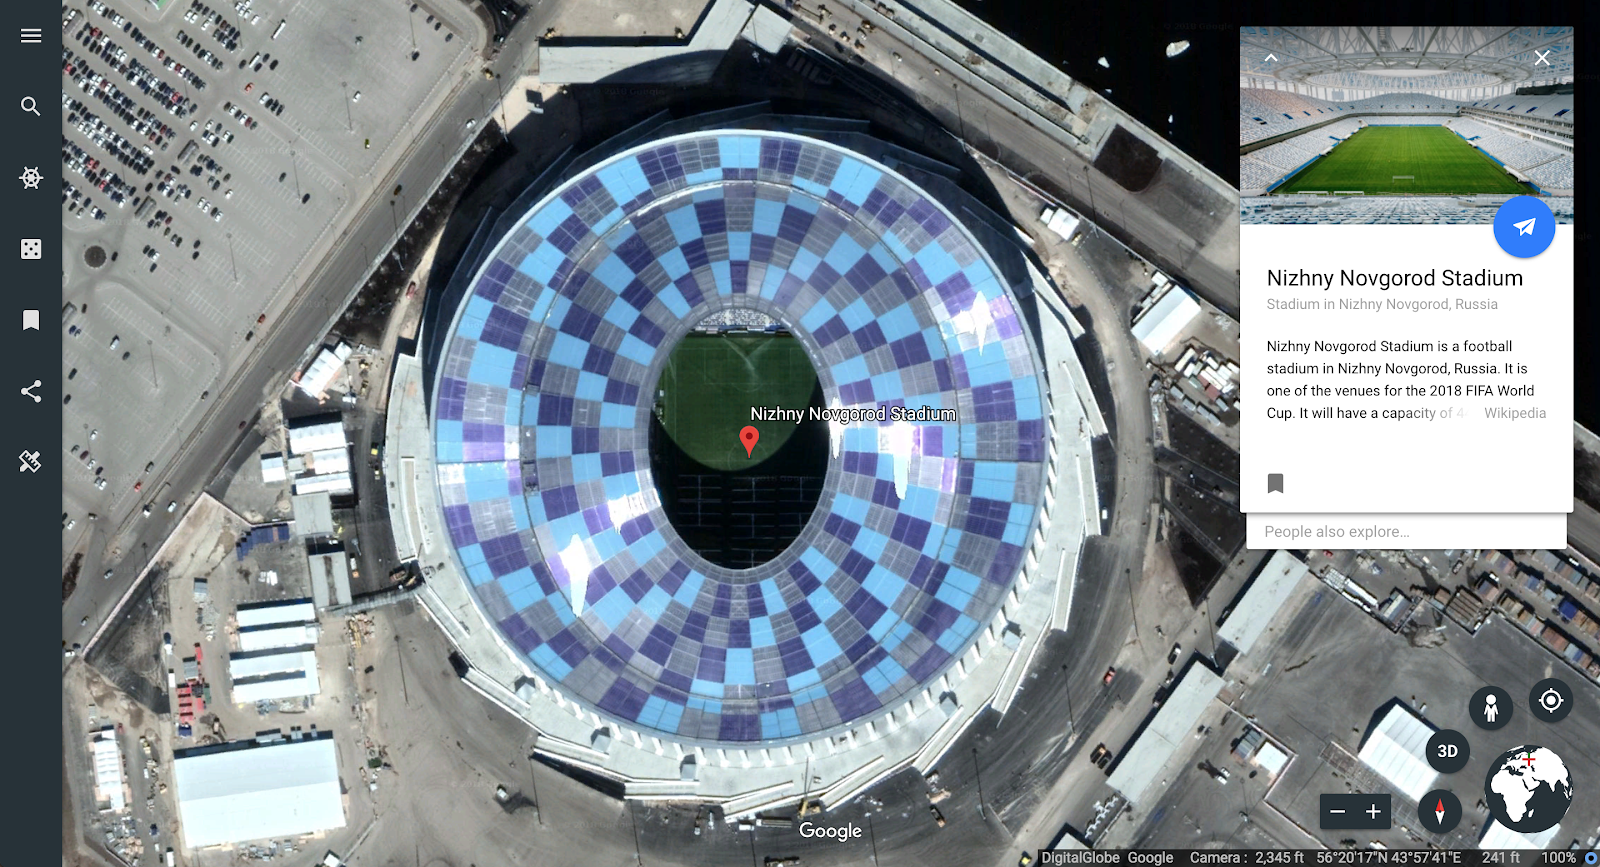 Introducing the Measure Tool for Google Earth on Chrome and Android